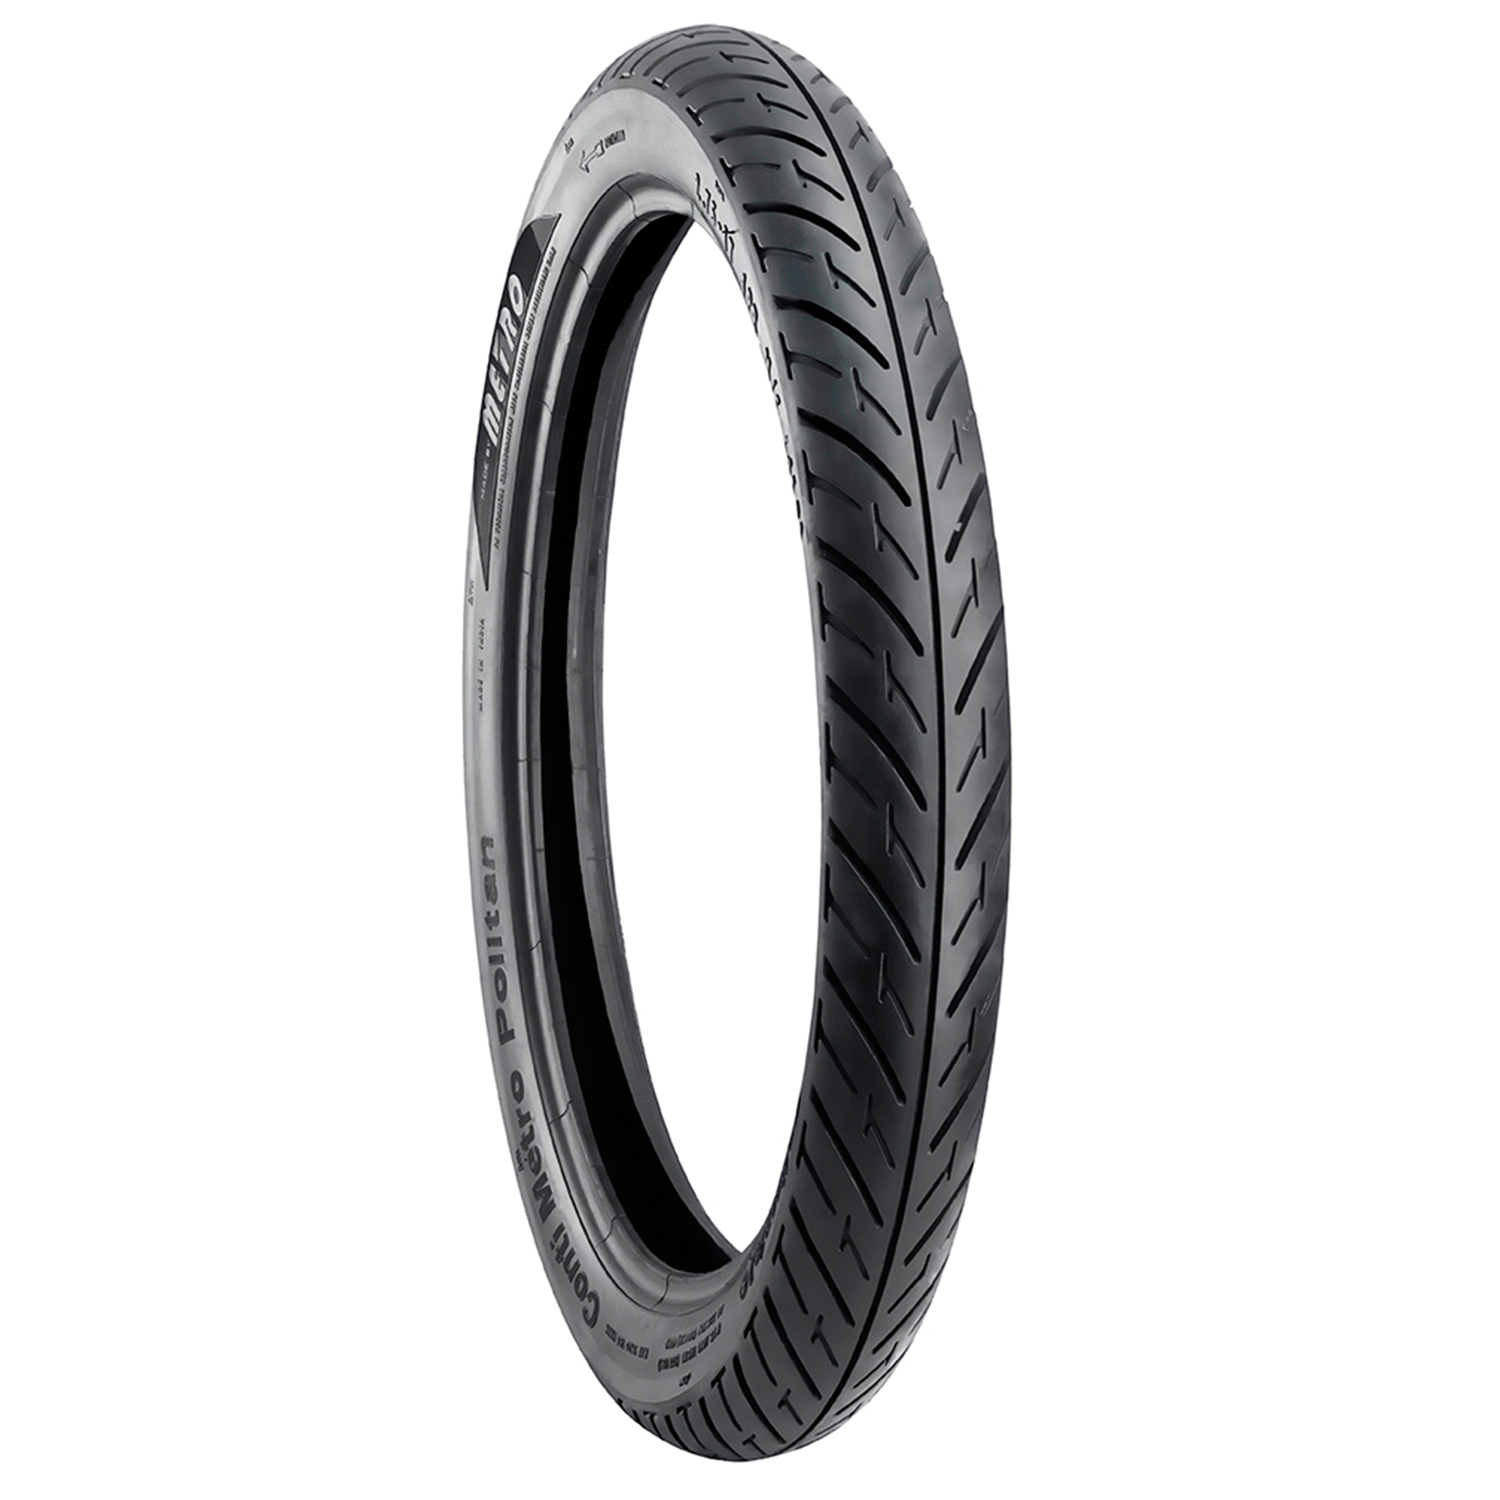 Metro CONTI METRO POLITAN 2.75 17 Requires Tube Front/Rear Two-Wheeler Tyre